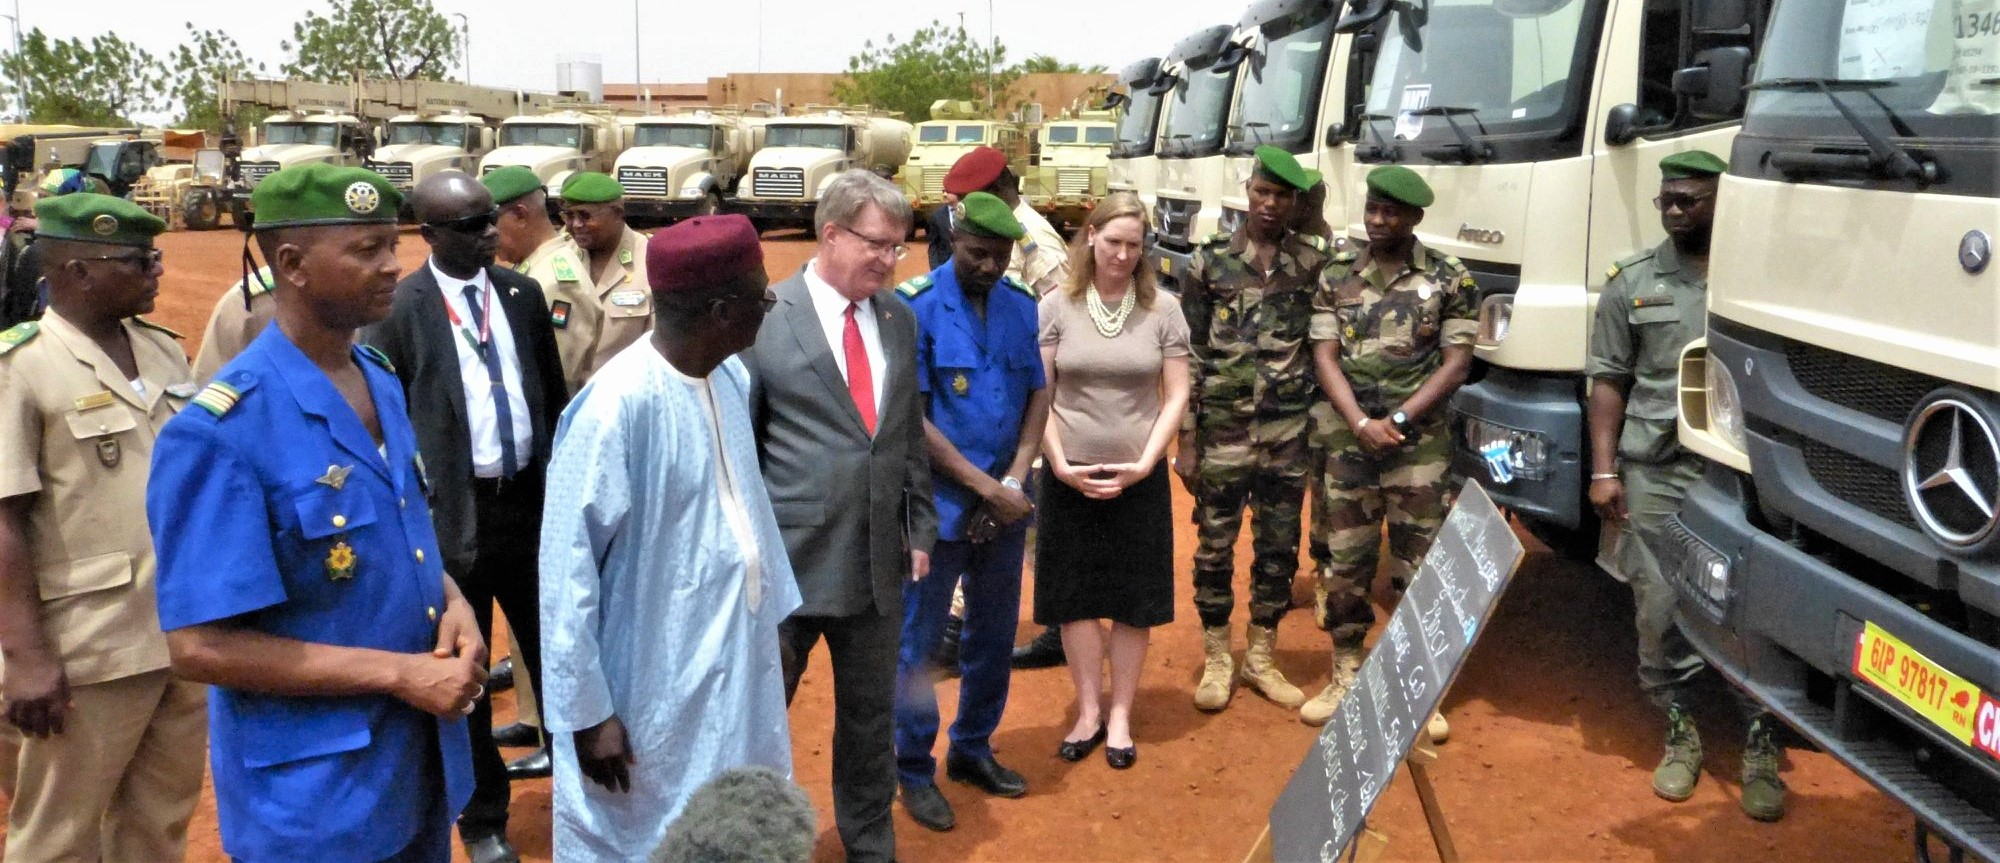 Attendees gather for the G5 Sahel Equipment Handover Ceremony in Niamey, Niger, June 6, 2019. This ceremony commemorated the first shipment of equipment, including transport, fuel and water trucks; GPS-enabled navigation systems; fuel containers; military tents and individual soldier equipment, the U.S. has sent to Niger in its effort to support the G5 Sahel. (Courtesy photo)